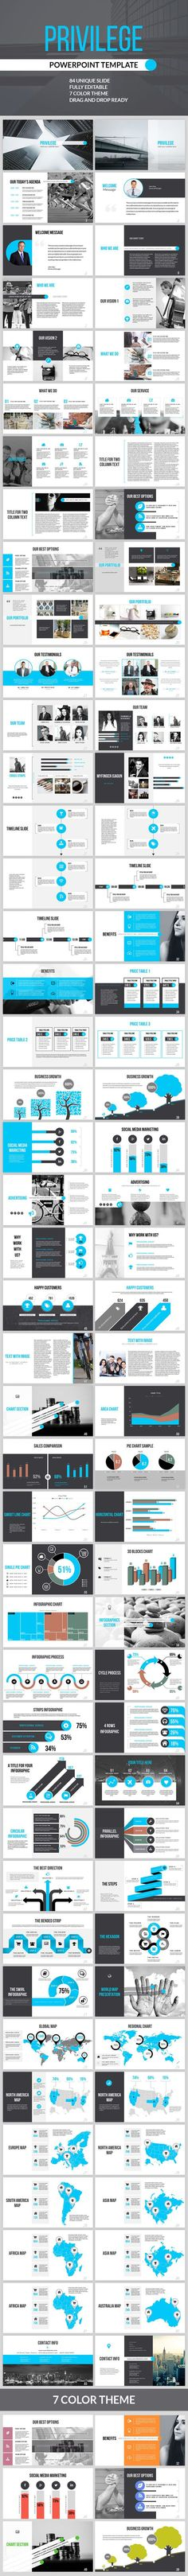 Business Plan Powerpoint Marketing presentation, Business - marketing presentation